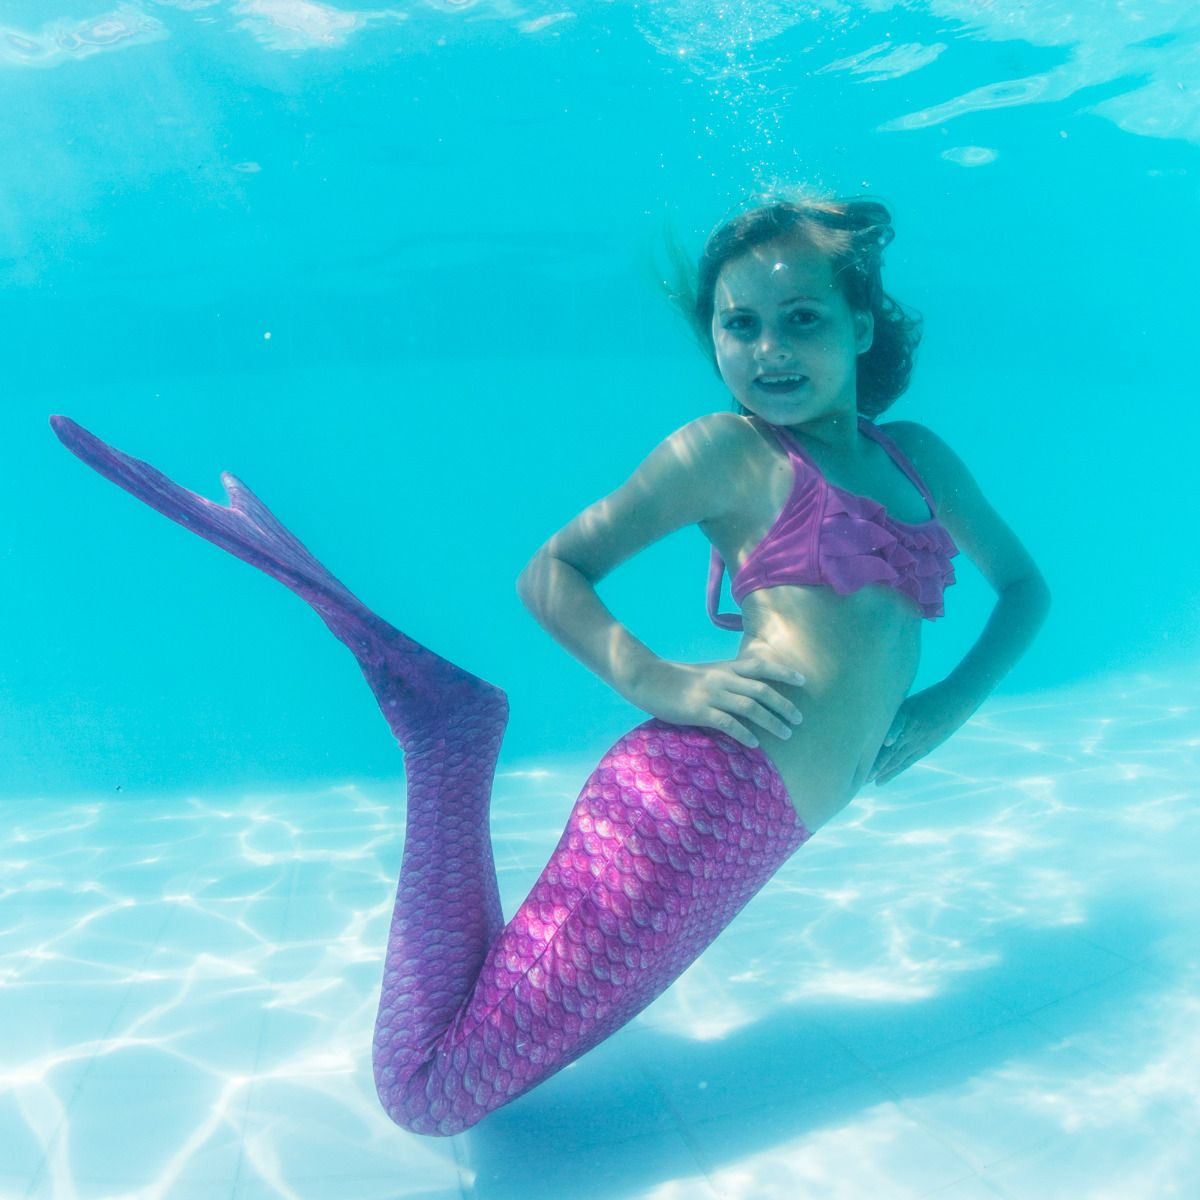 Swimmable Mermaid Tails: Pink Mermaid Tail For Kids & Adults